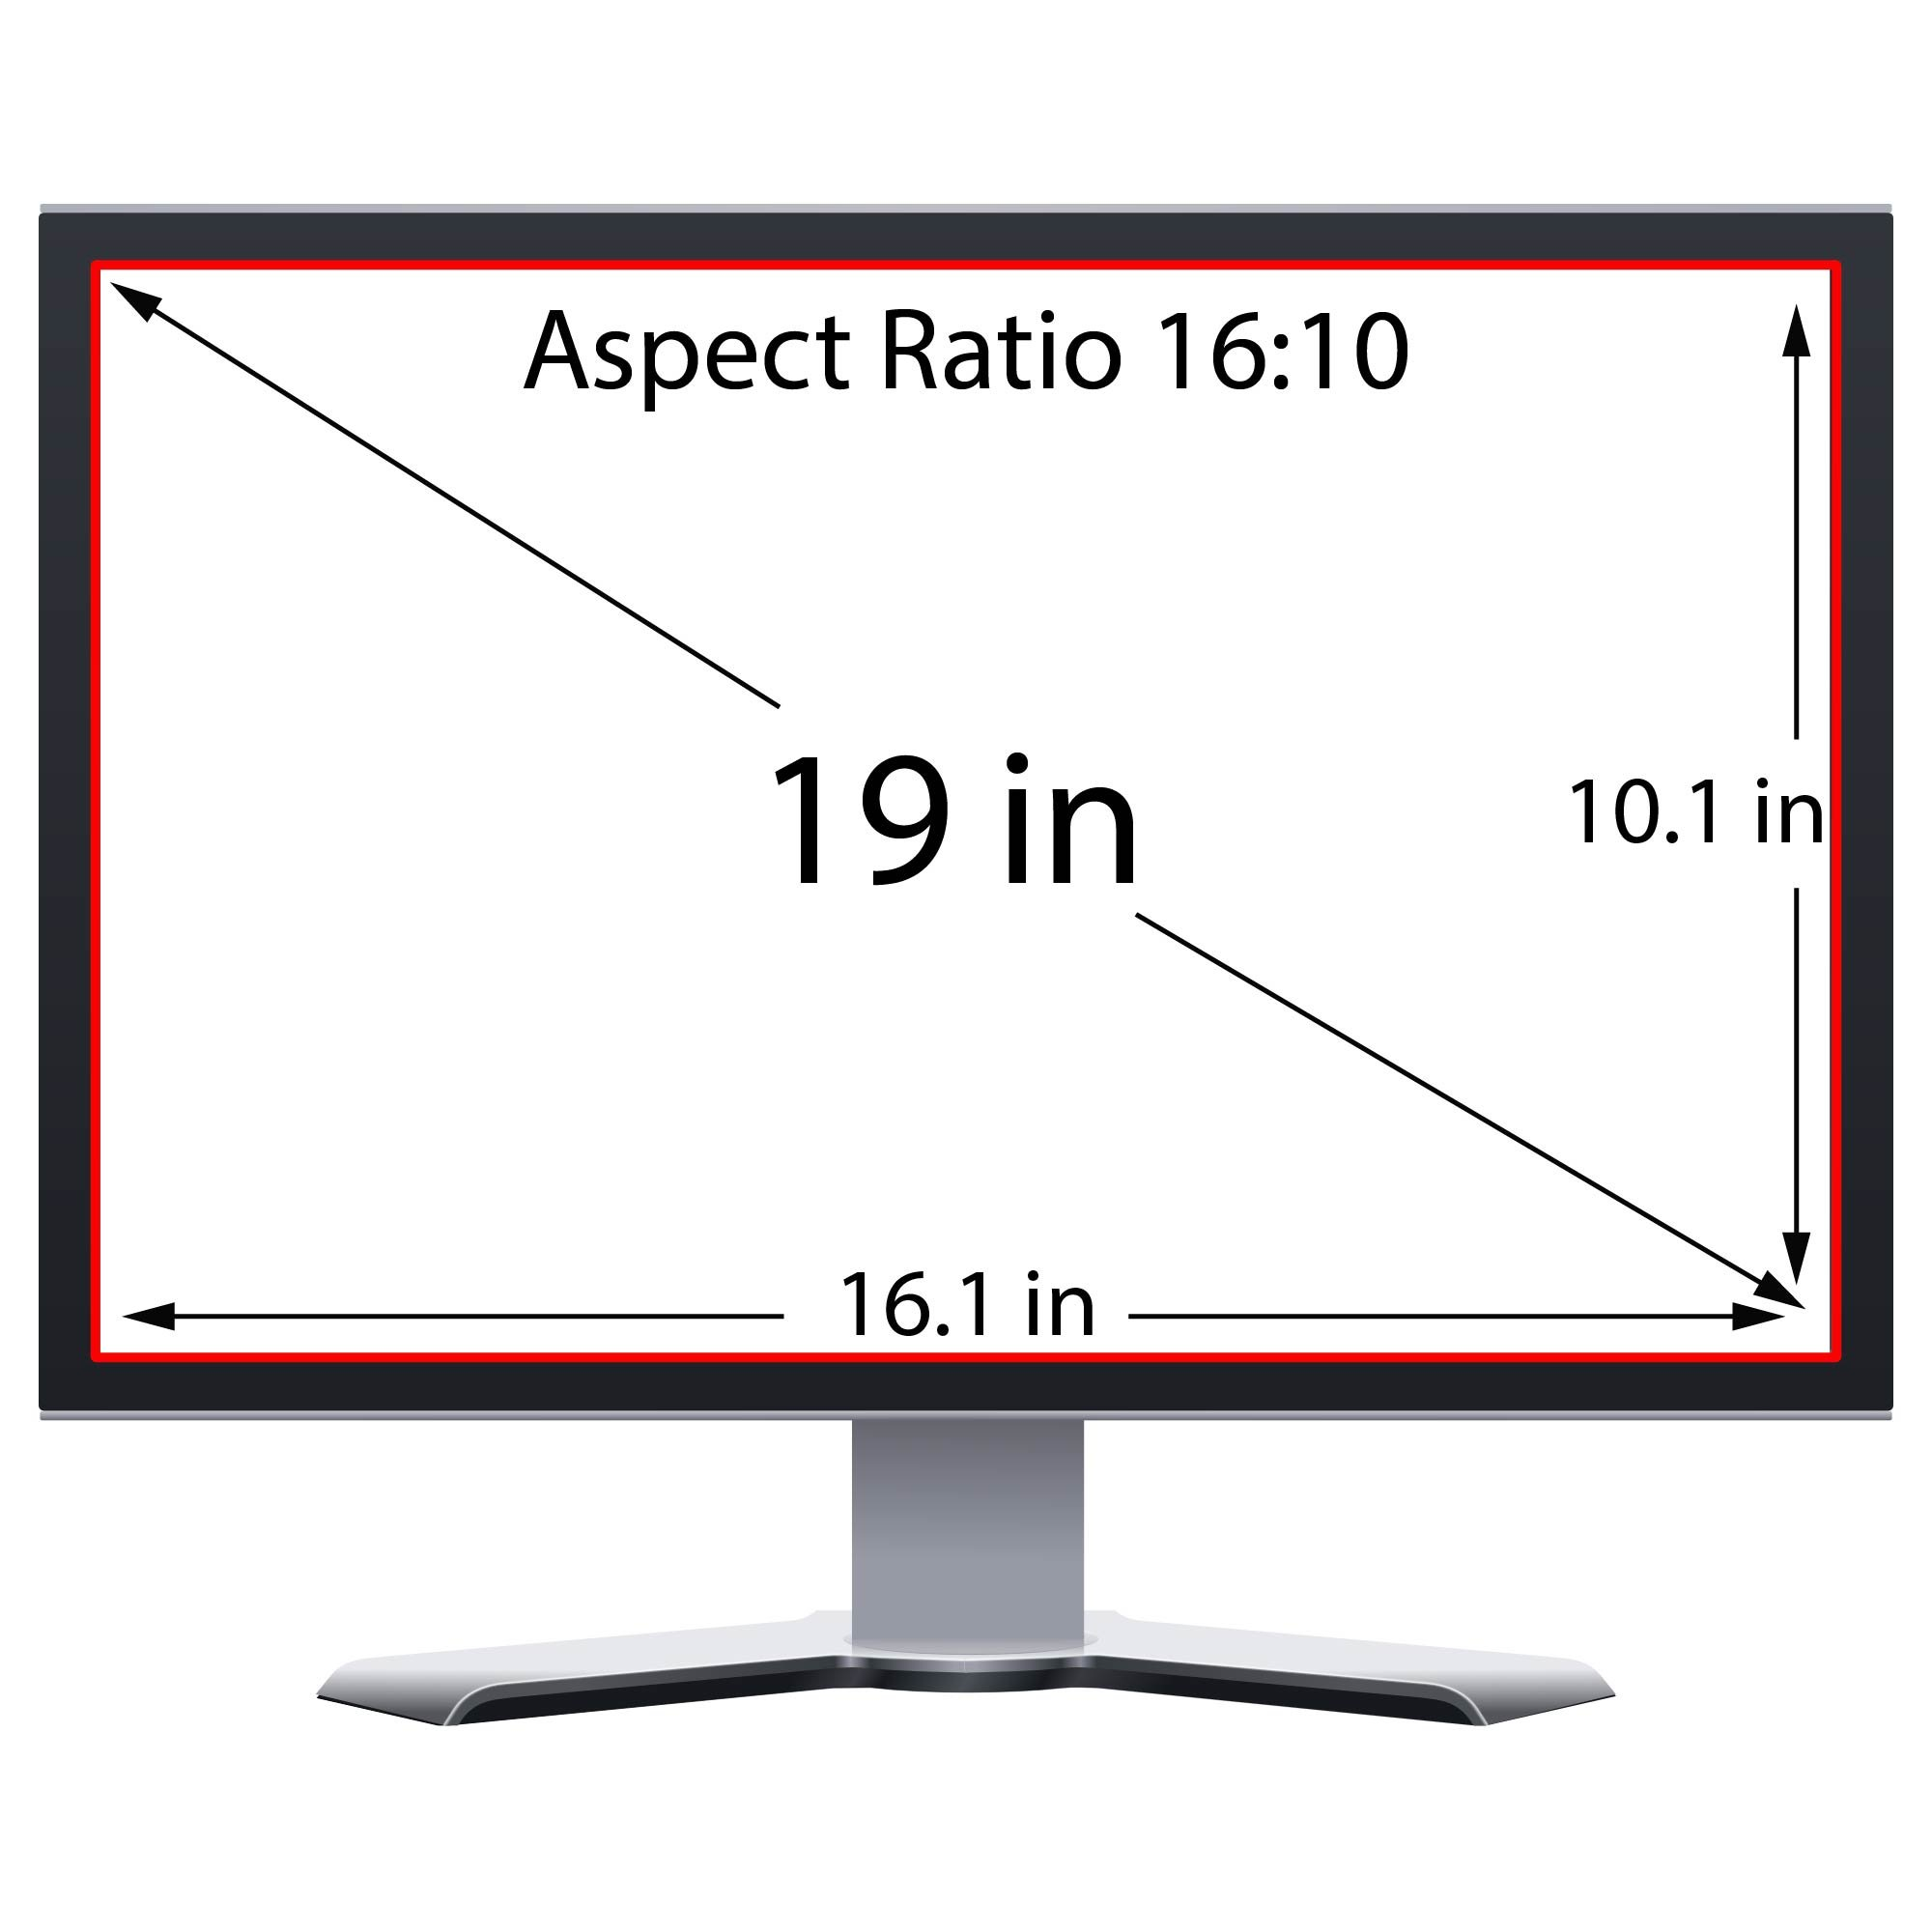 Privacy Screen Filter and Anti Glare for 19 Inches Desktop Computer Widescreen Monitor with Aspect Ratio 16:10 Please check Dimension Carefully